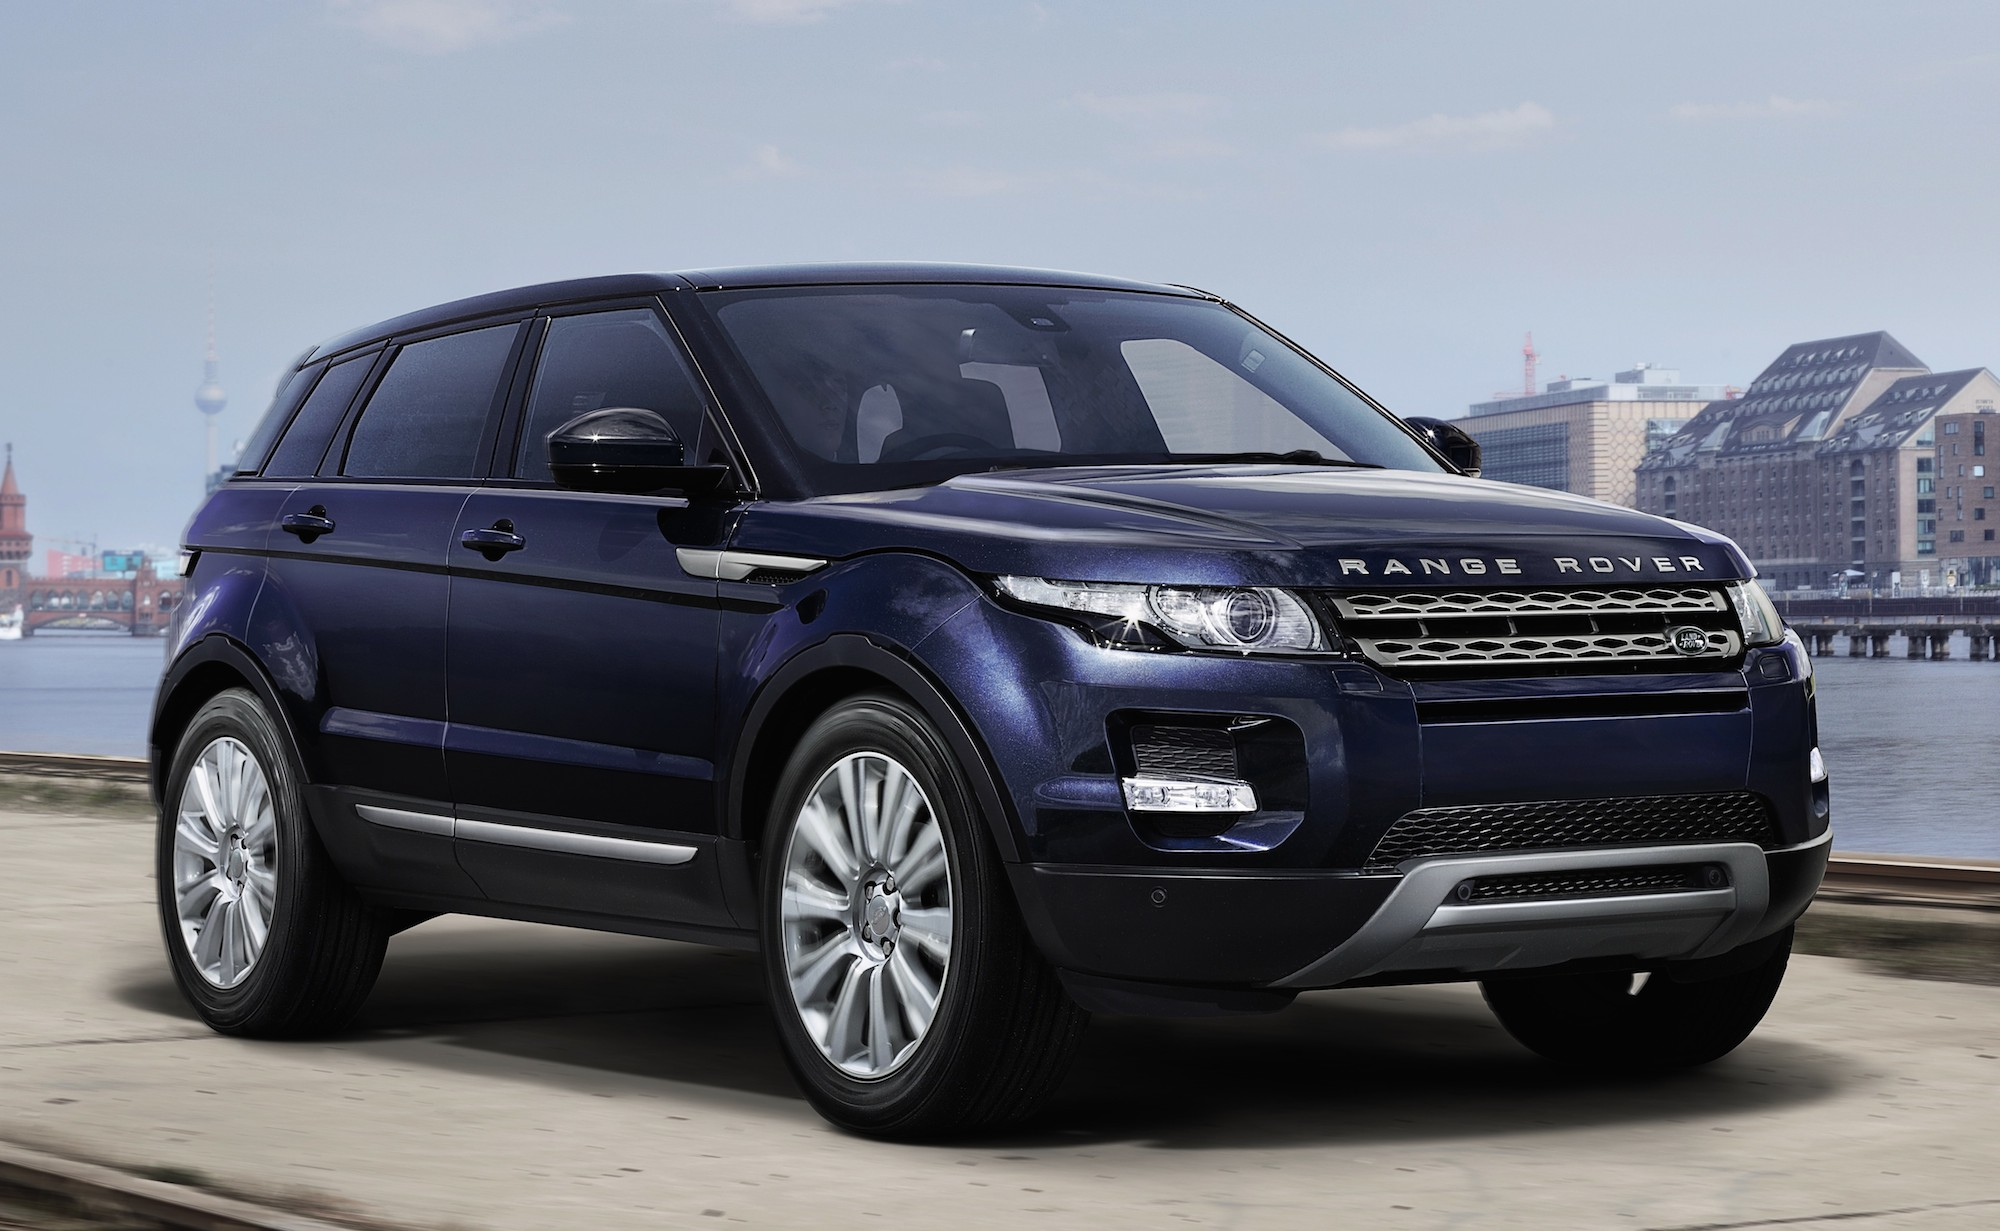 Ad 2014 Range Rover Evoque Is Now Out Get Up Close And